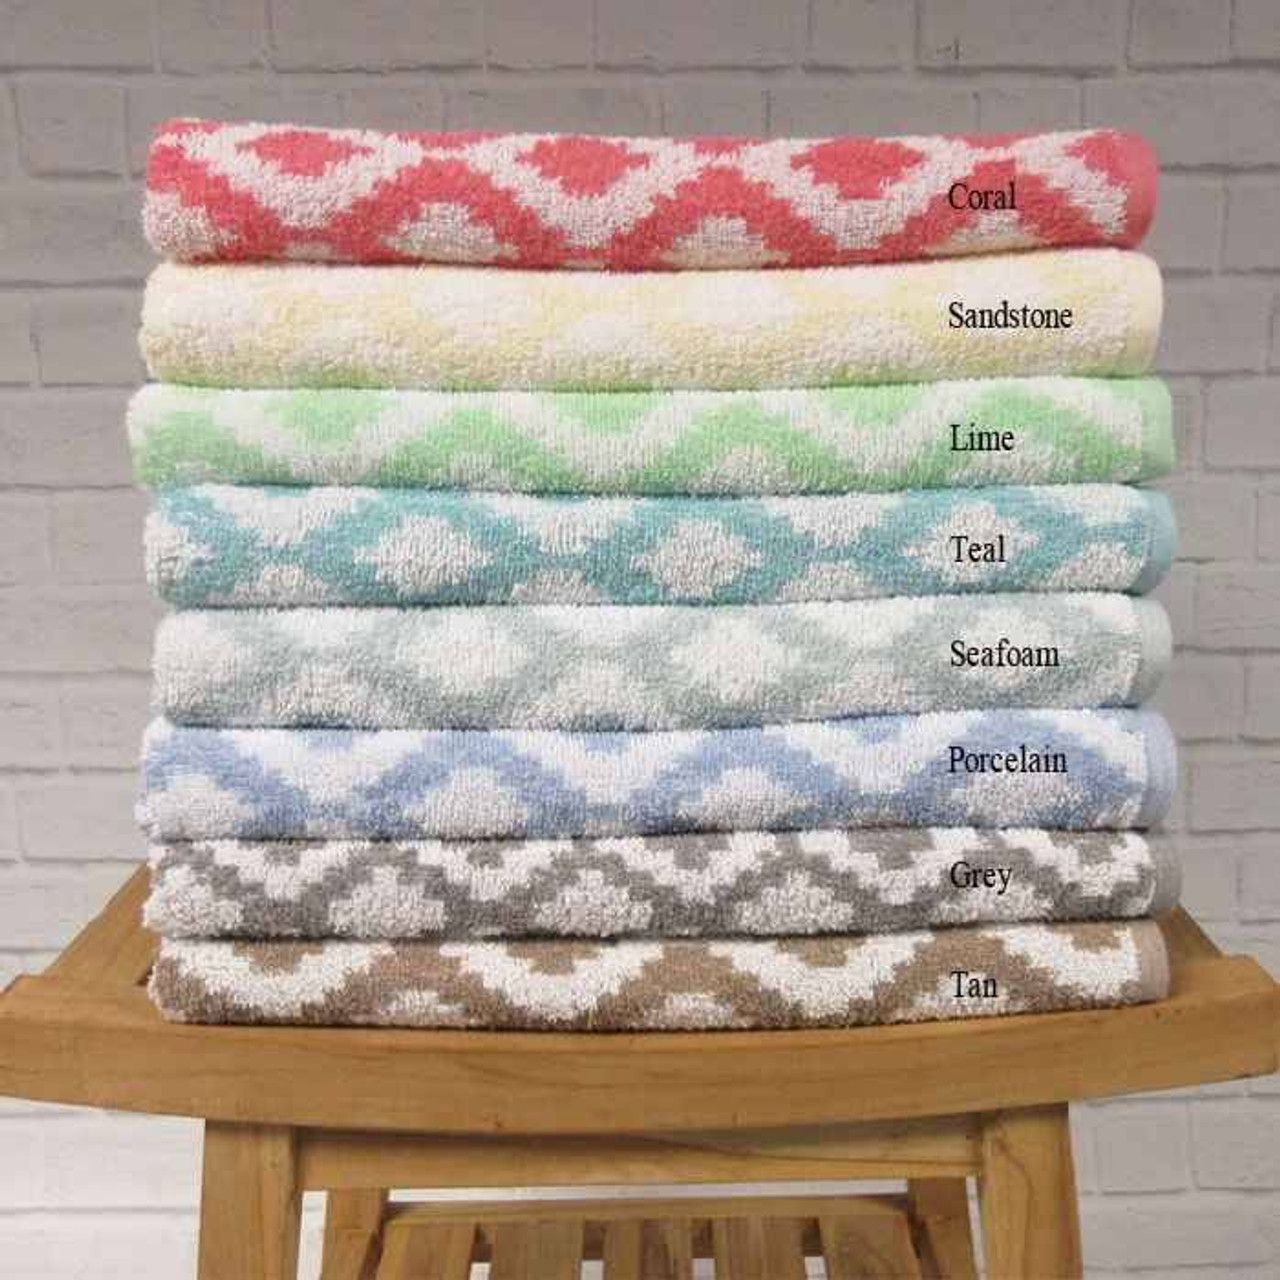 1888 Mills 1888 Mills Bath Sheets or Fibertone or Diamond Jacquard Towels